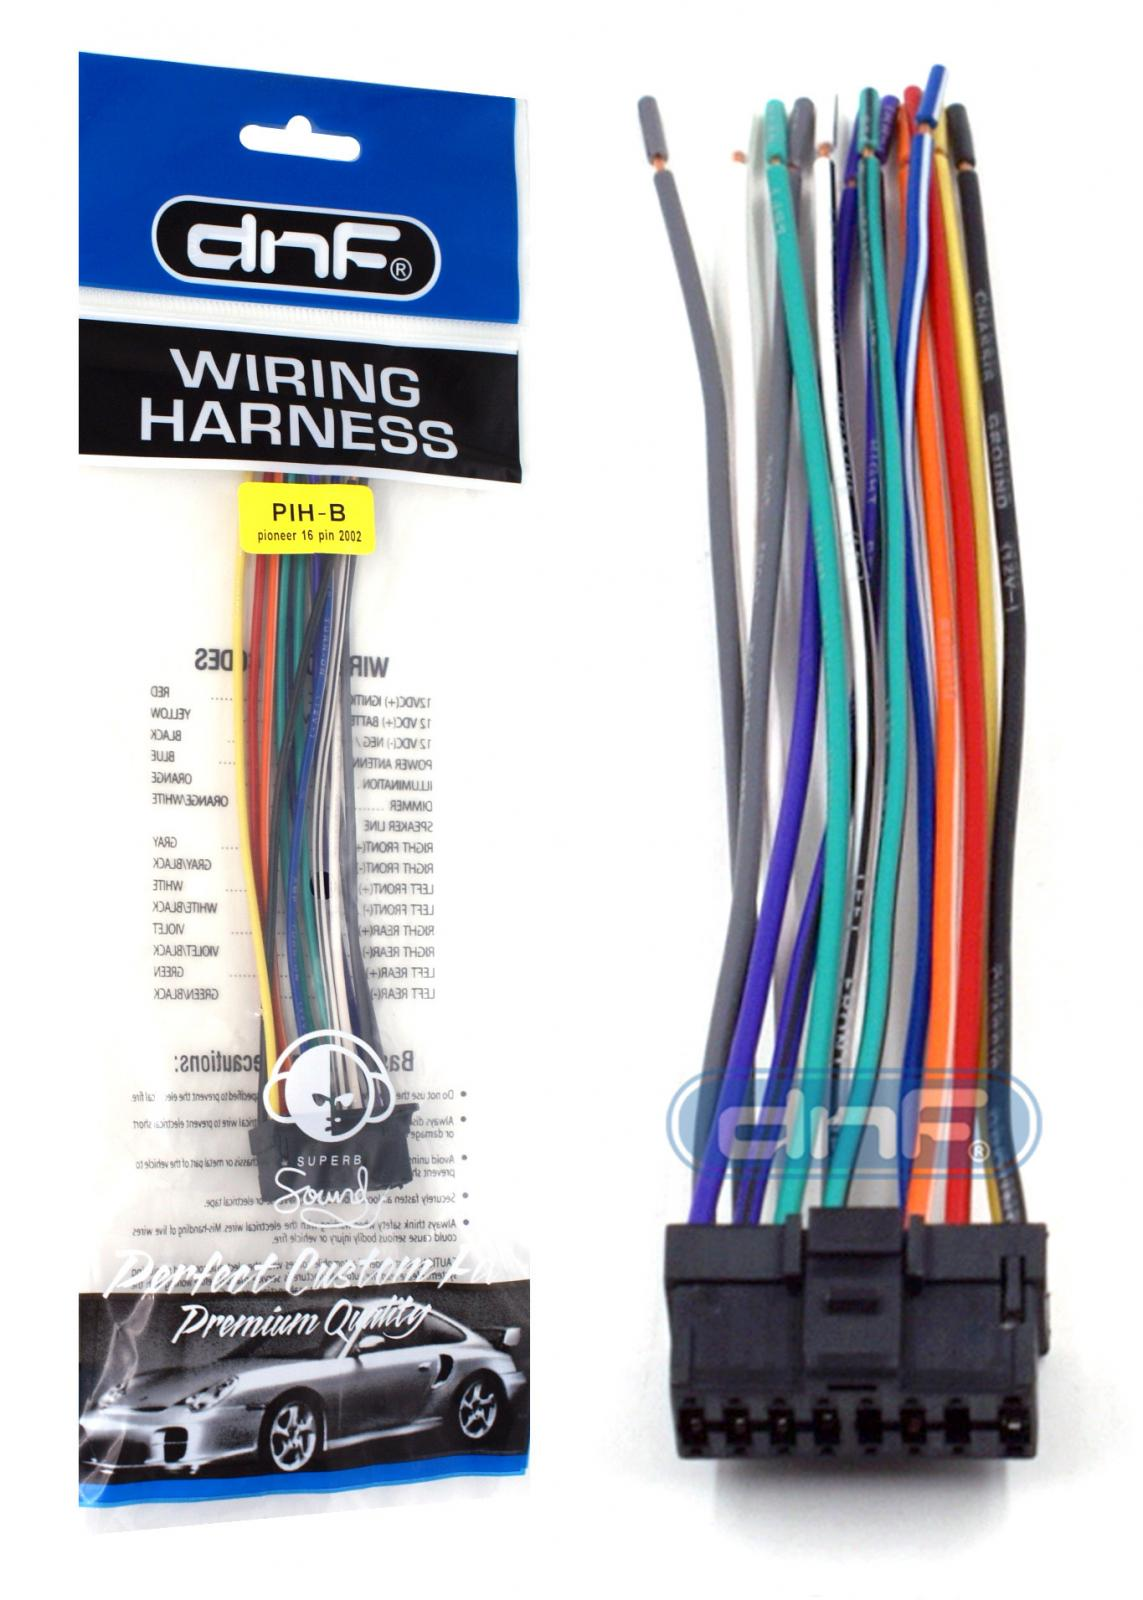 medium resolution of pioneer wiring harness deh p6400 deh p6450 fh p4000 free same day